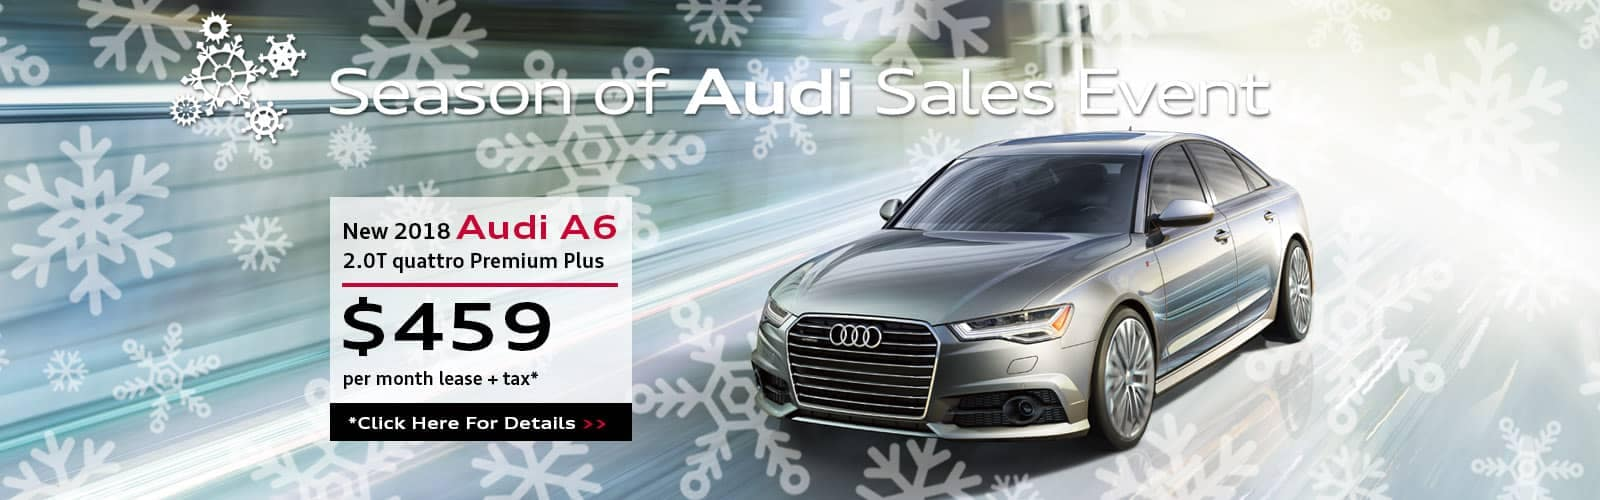 A6 Lease Specials